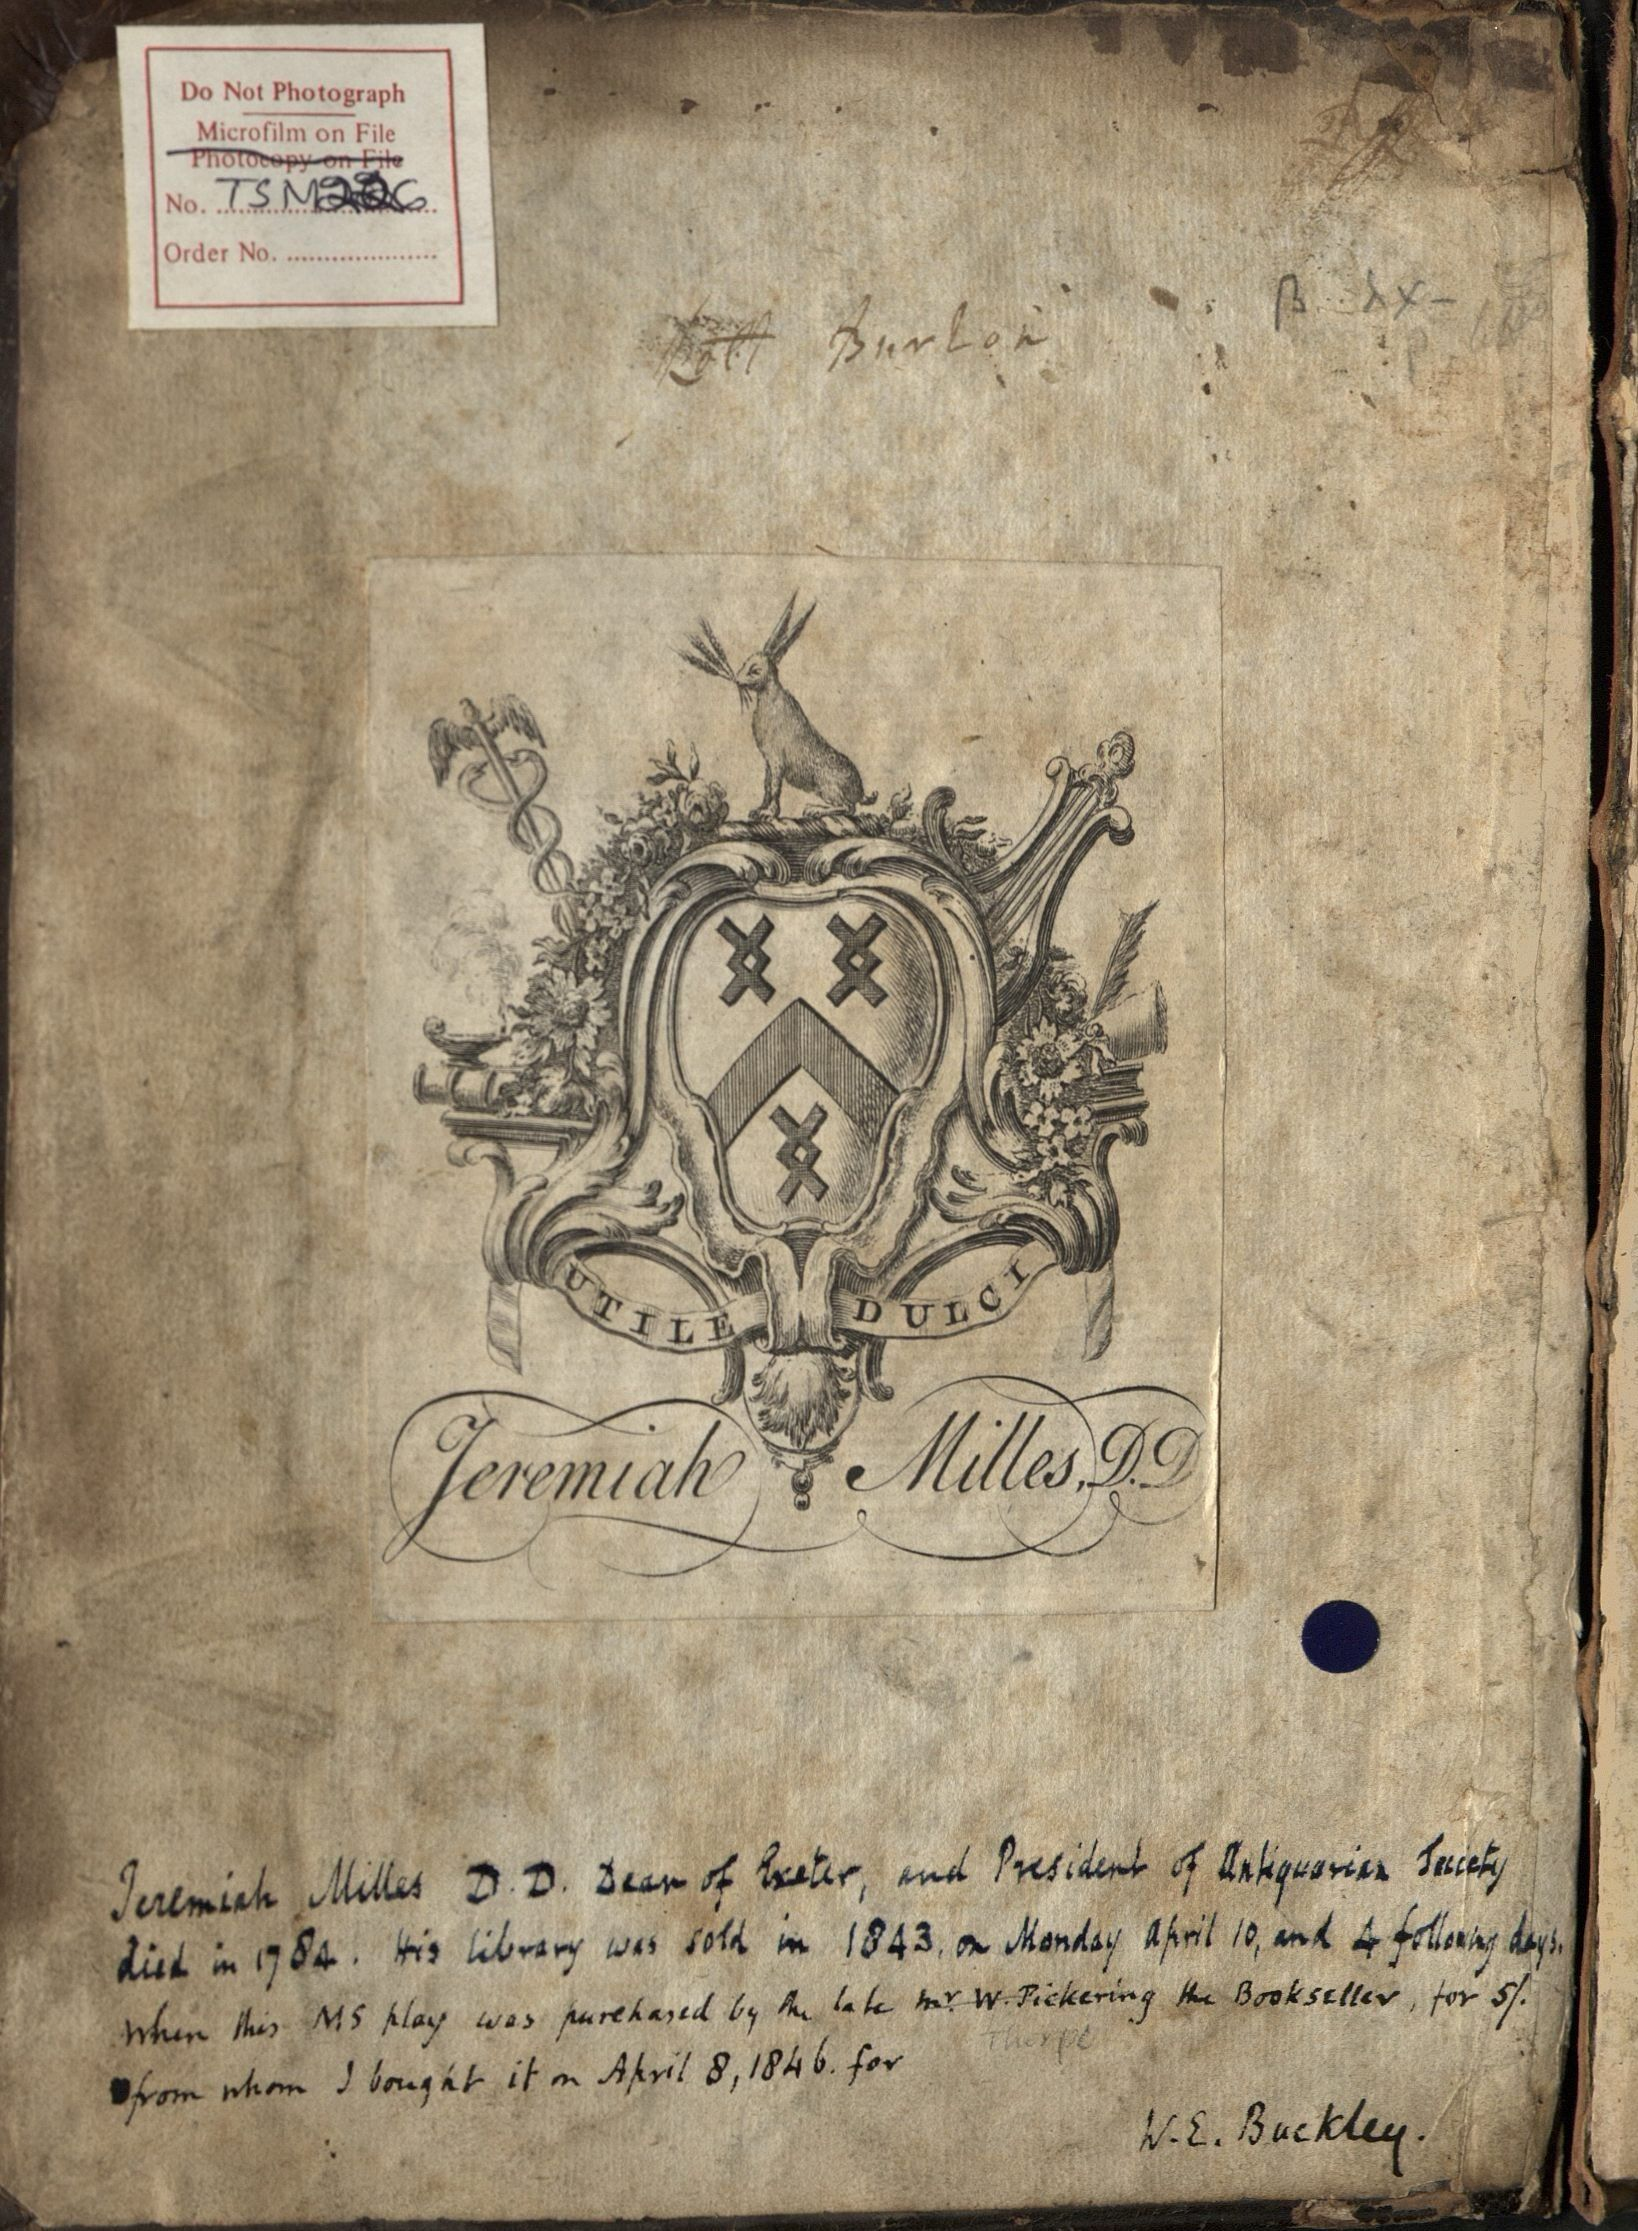 MS Thr 10, inside front cover